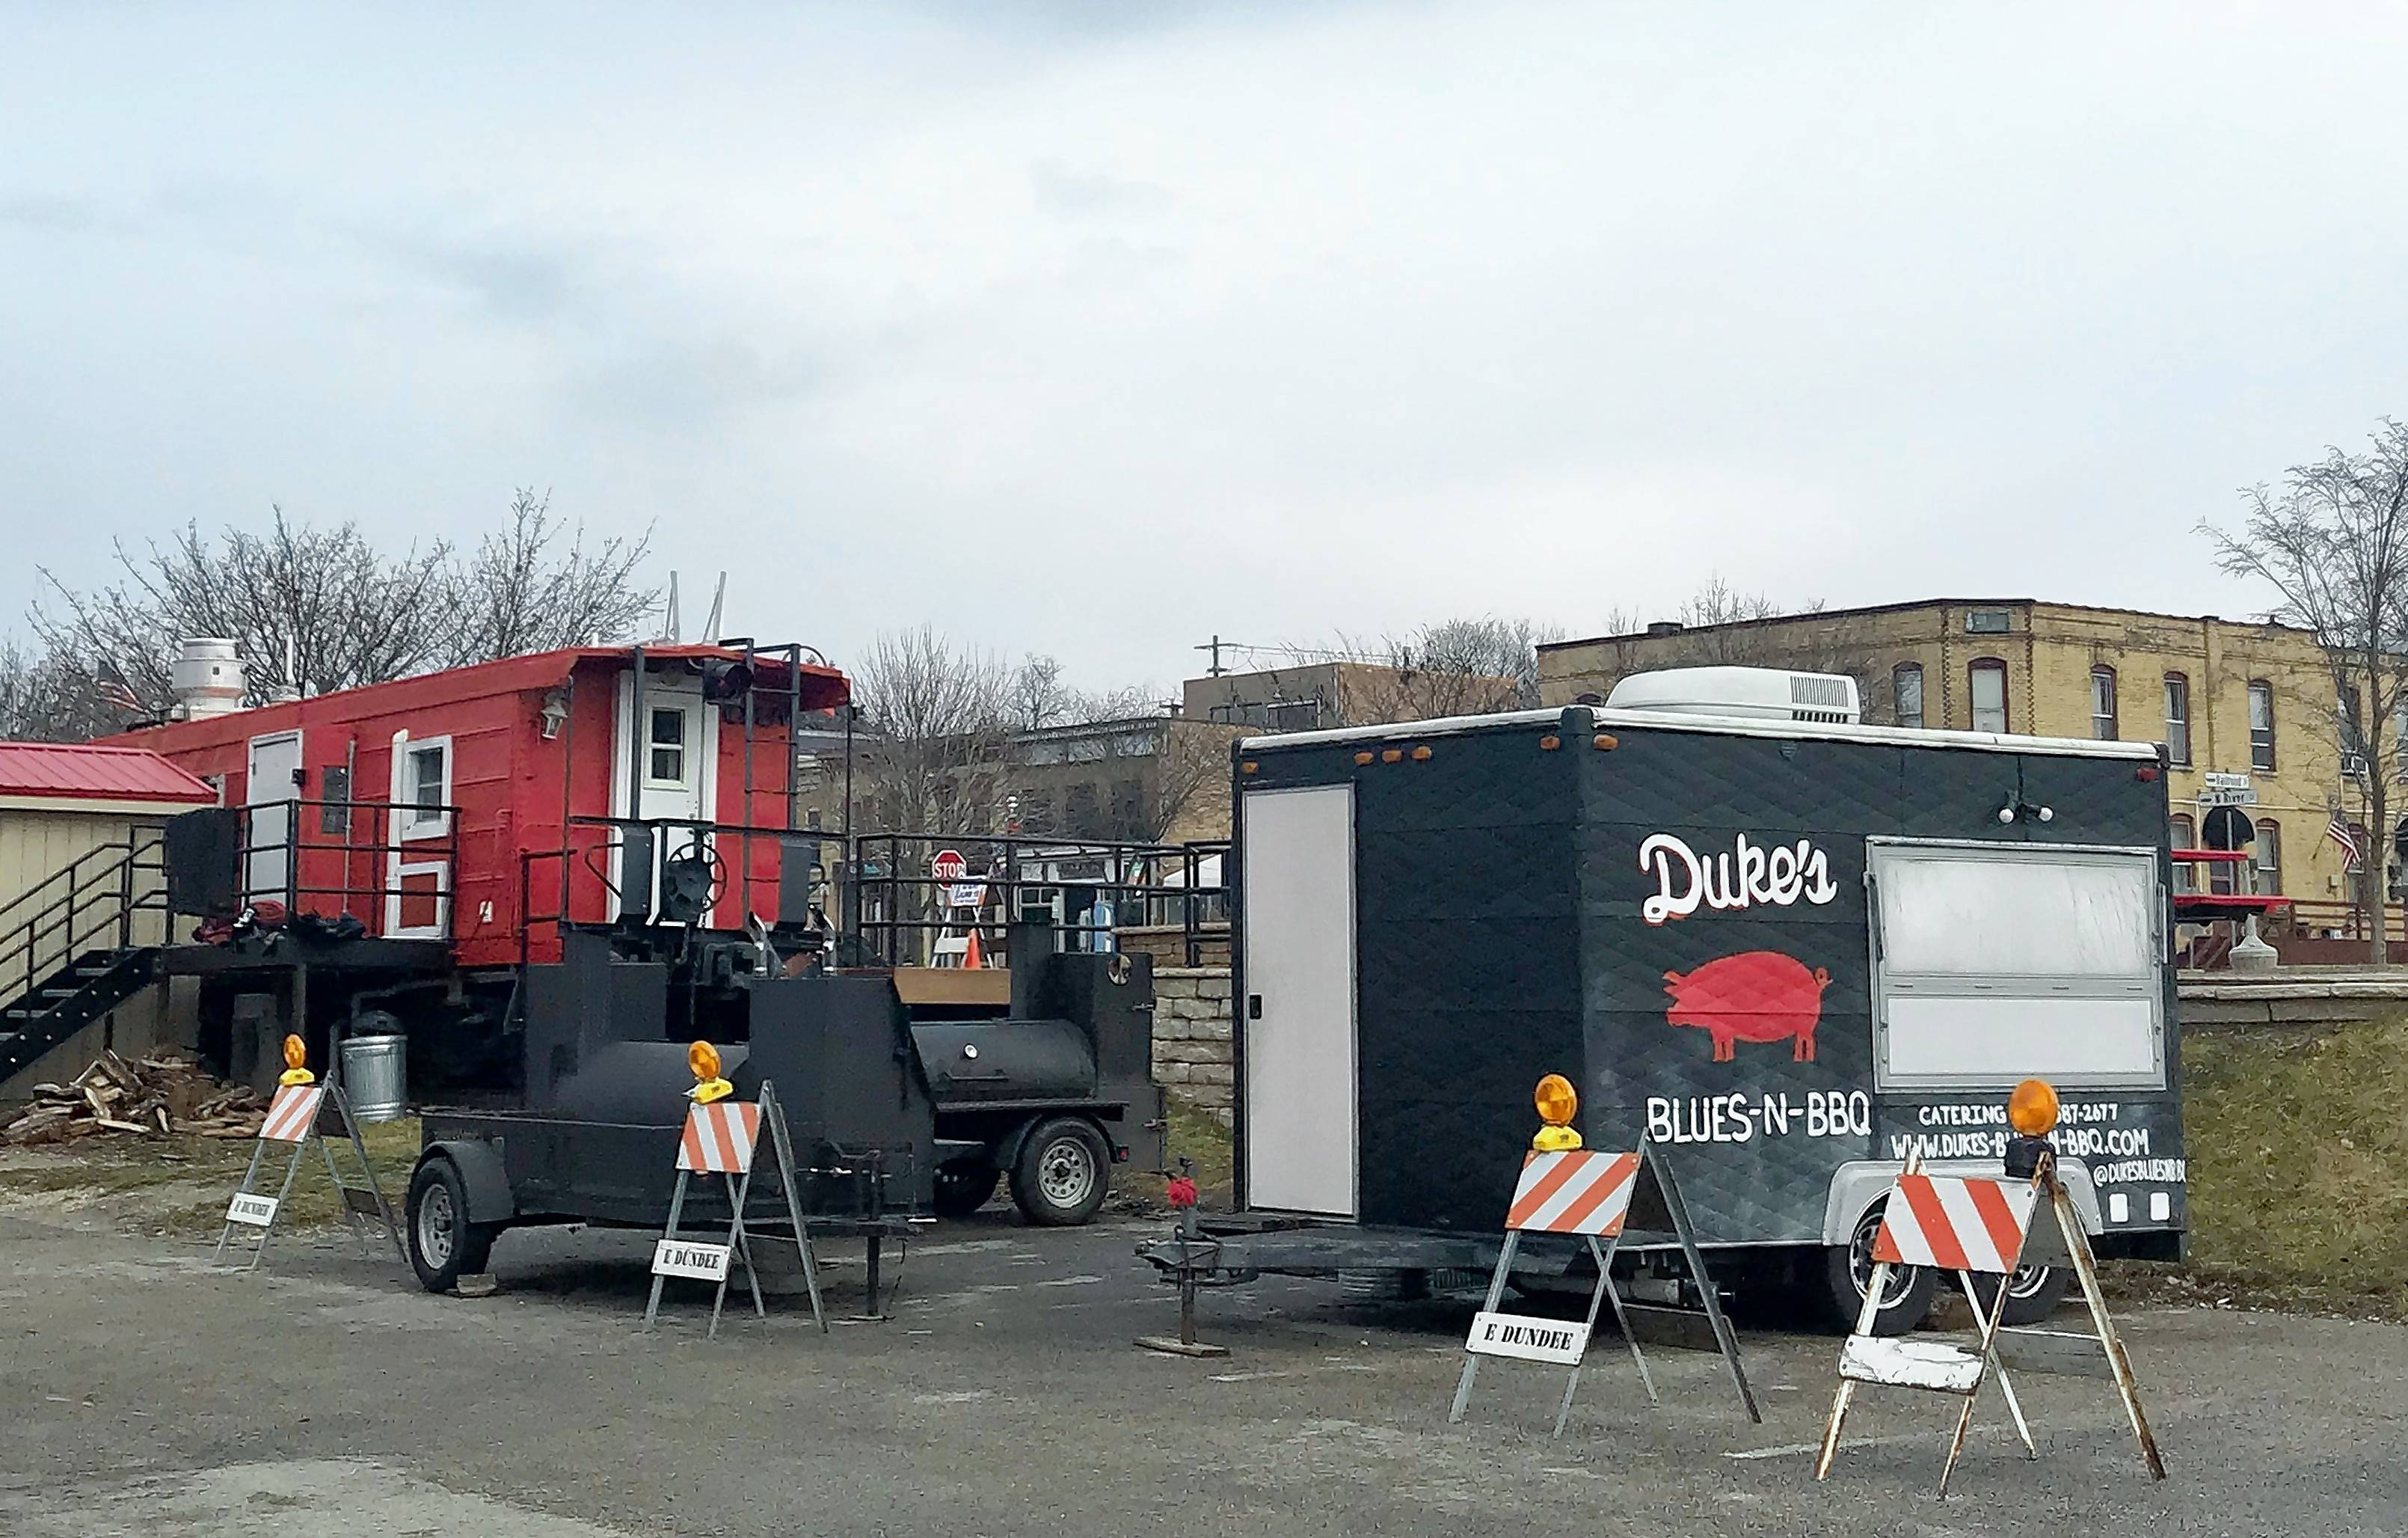 With the caboose concession stand closed for the winter, Duke's Blues-n-BBQ will temporarily operate out of a food truck in downtown East Dundee.